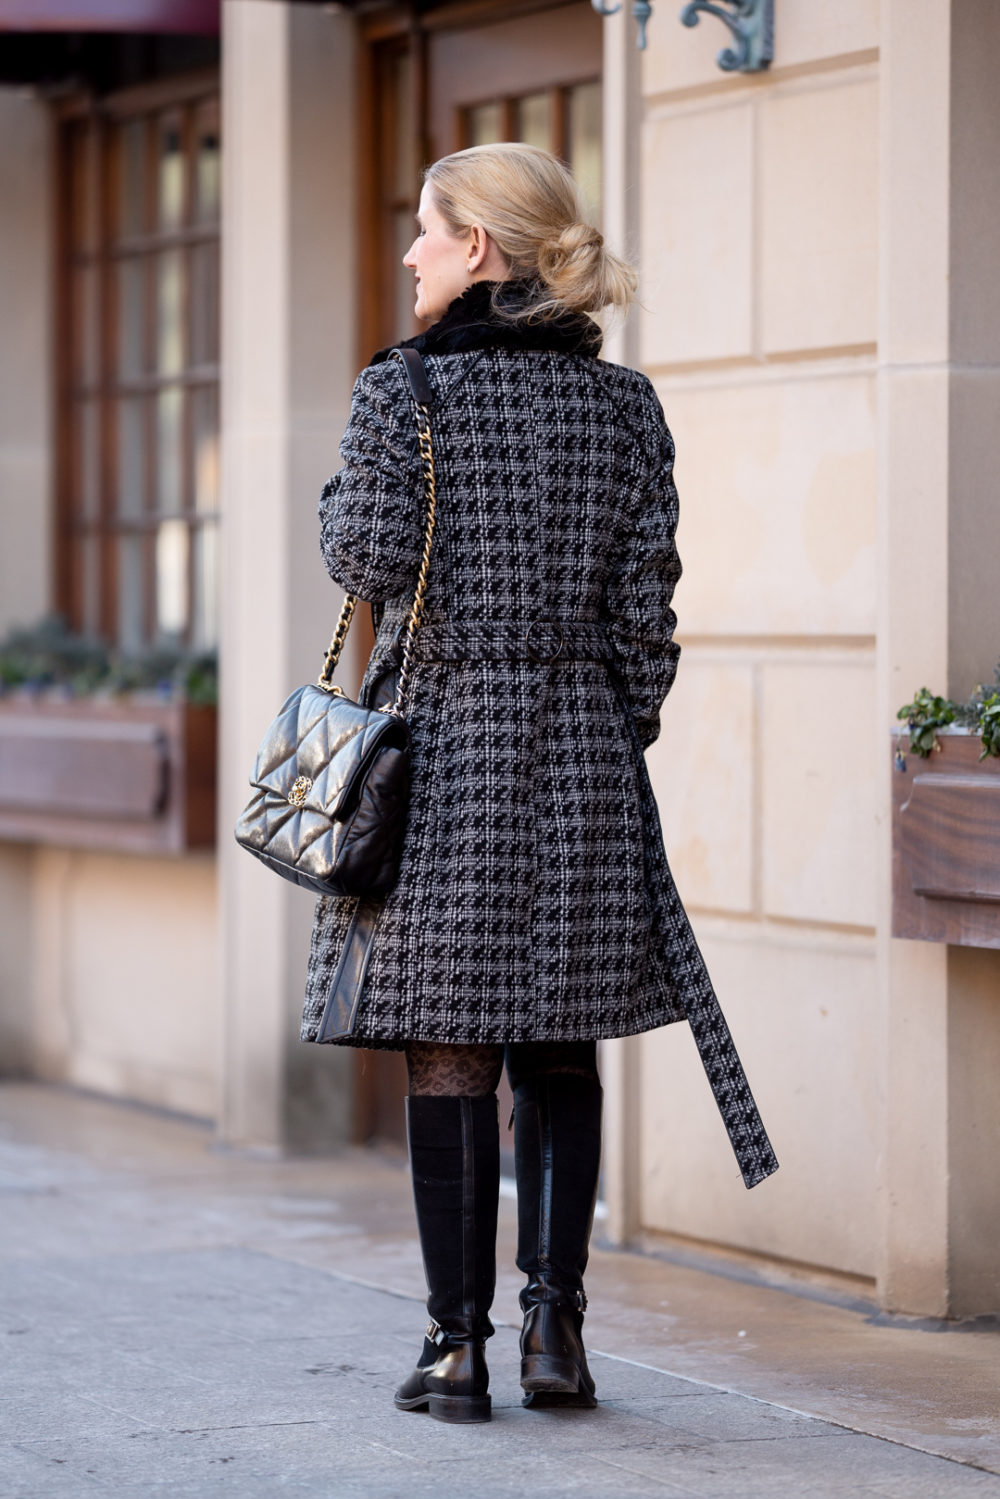 Petite Fashion Blog | Lark & Ro Women's Long Sleeve Ribbed Crewneck Fit and Flare Sweater Dress | Via Spiga-Tied Houndstooth Faux Fur Collar Double-Breasted Coat | Aquatalia Boots | Chanel 19 Bag